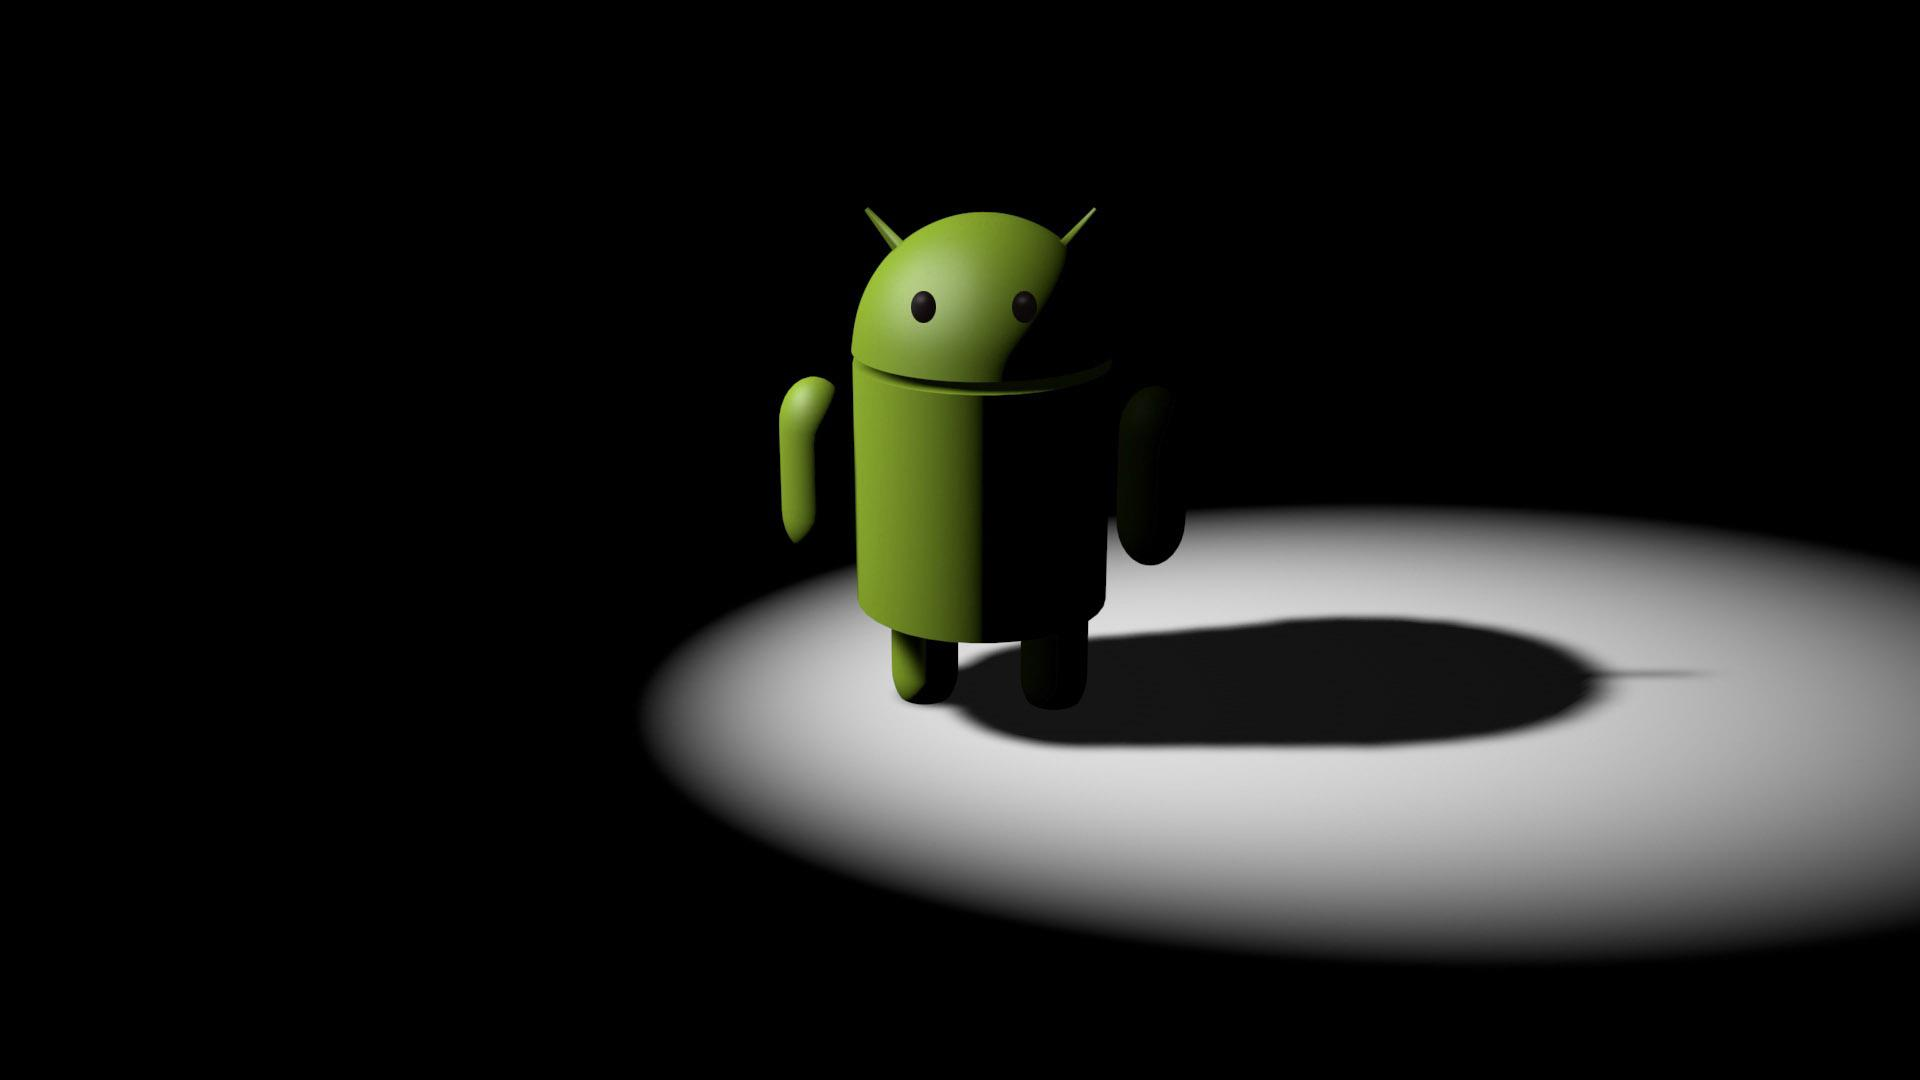 Android Phone Alone Hd Wallpaper